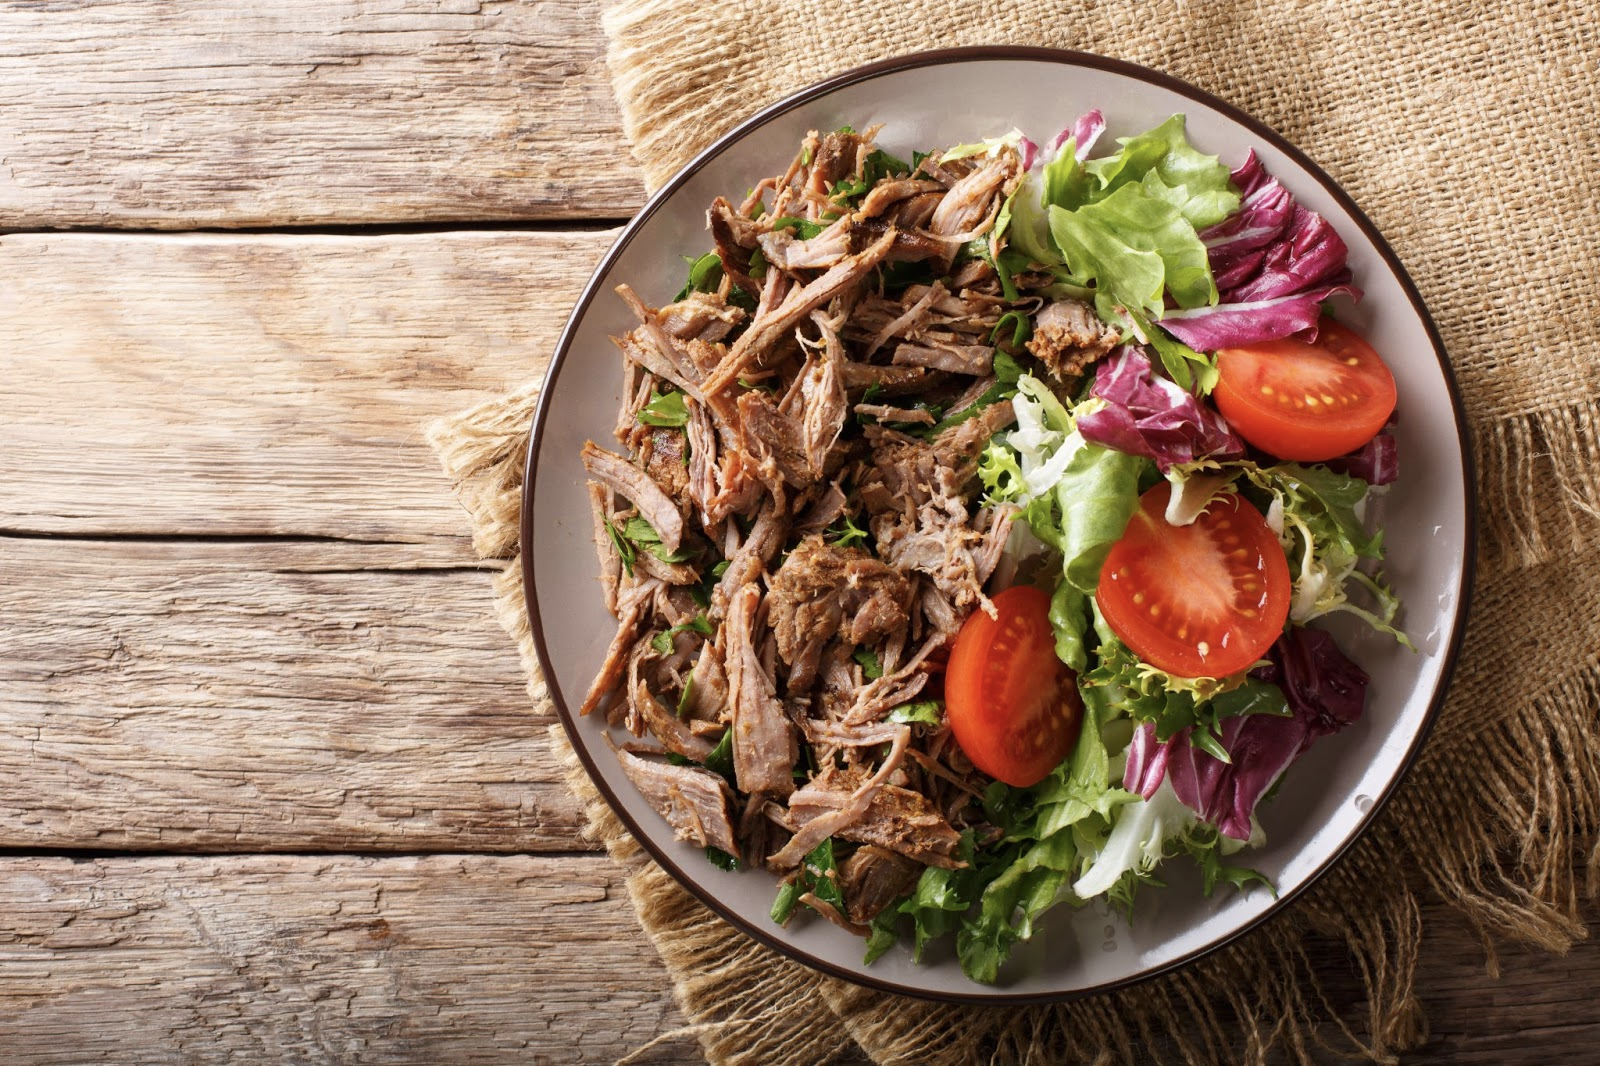 ulcerative colitis vs Crohns: Bowl of salad with meat on top of a wooden surface